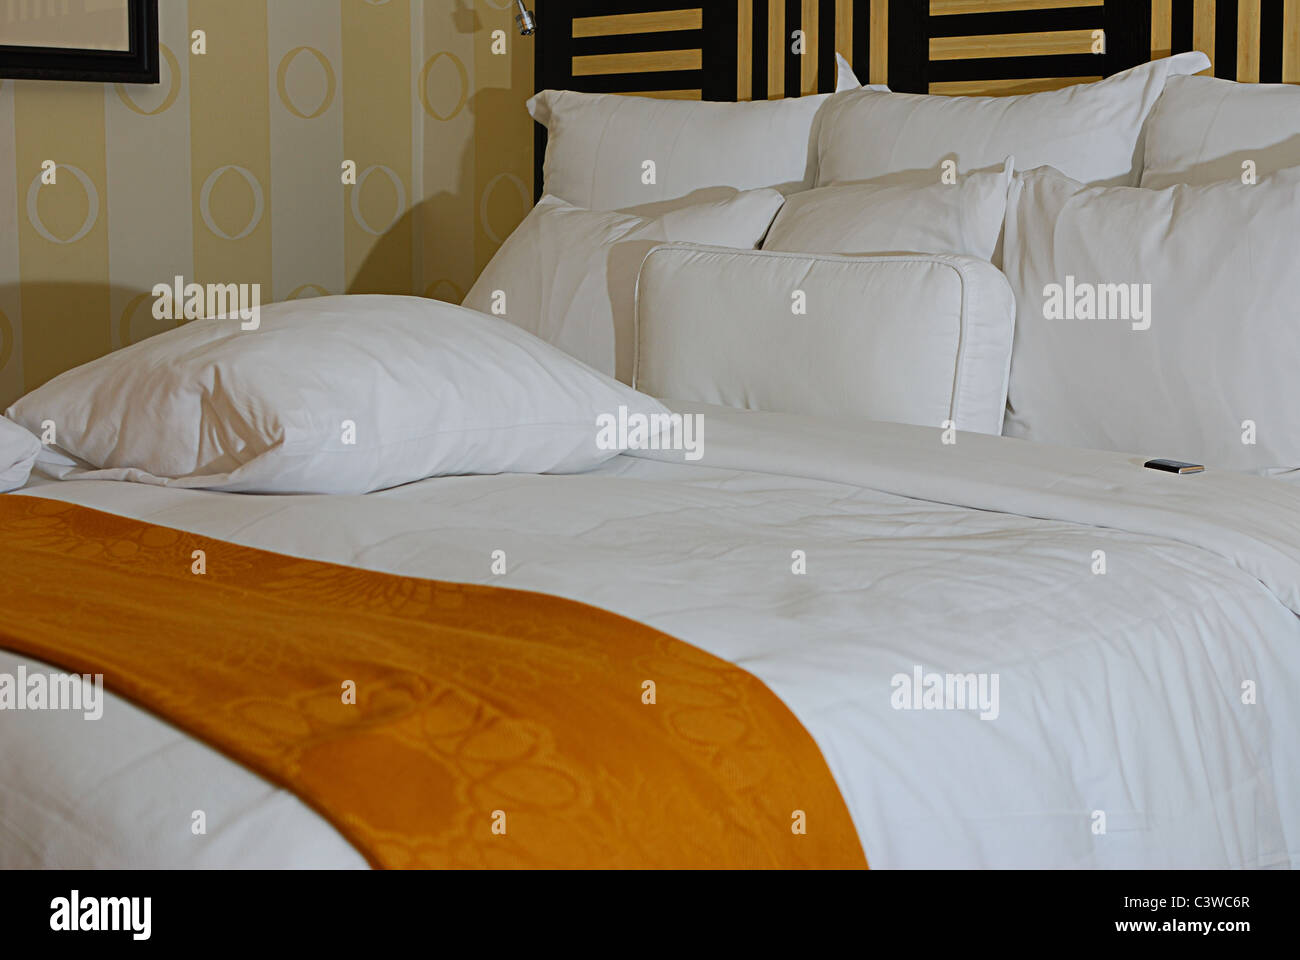 Modern Hotel Room with candy on the pillow Stock Photo